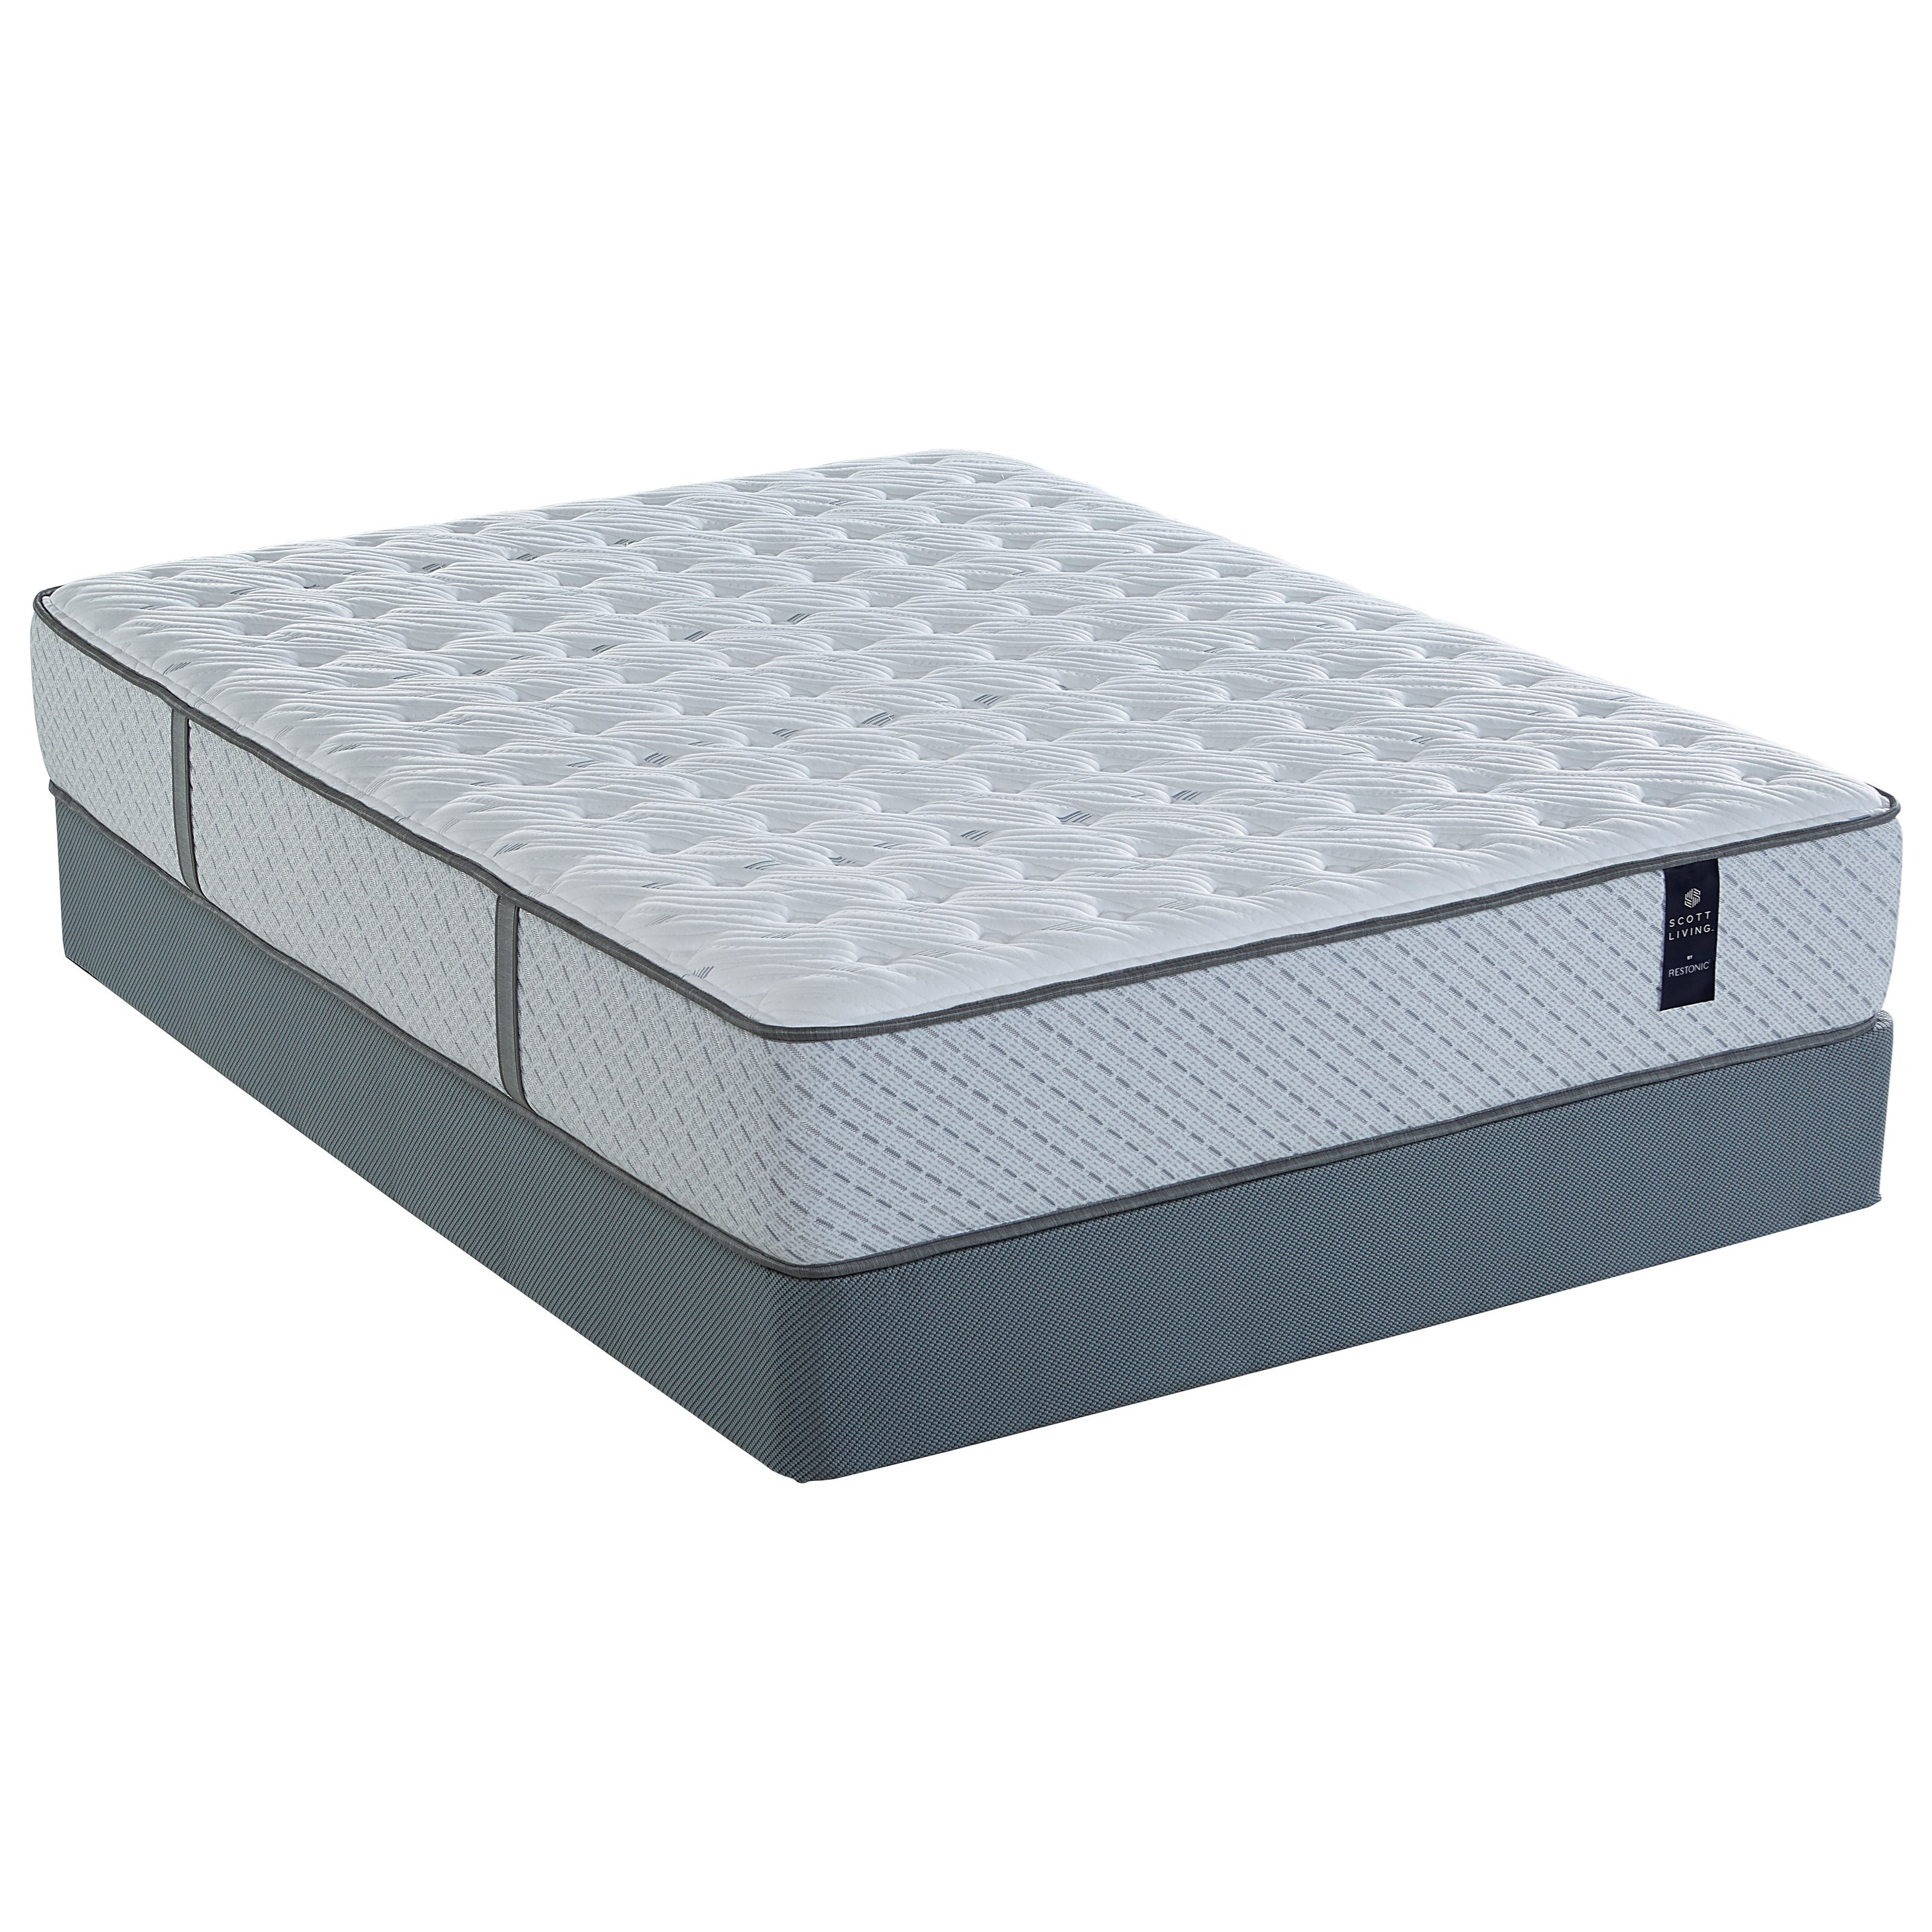 Juniper Extra Firm Twin XL Pocketed Coil Mattress Set by Restonic at H.L. Stephens